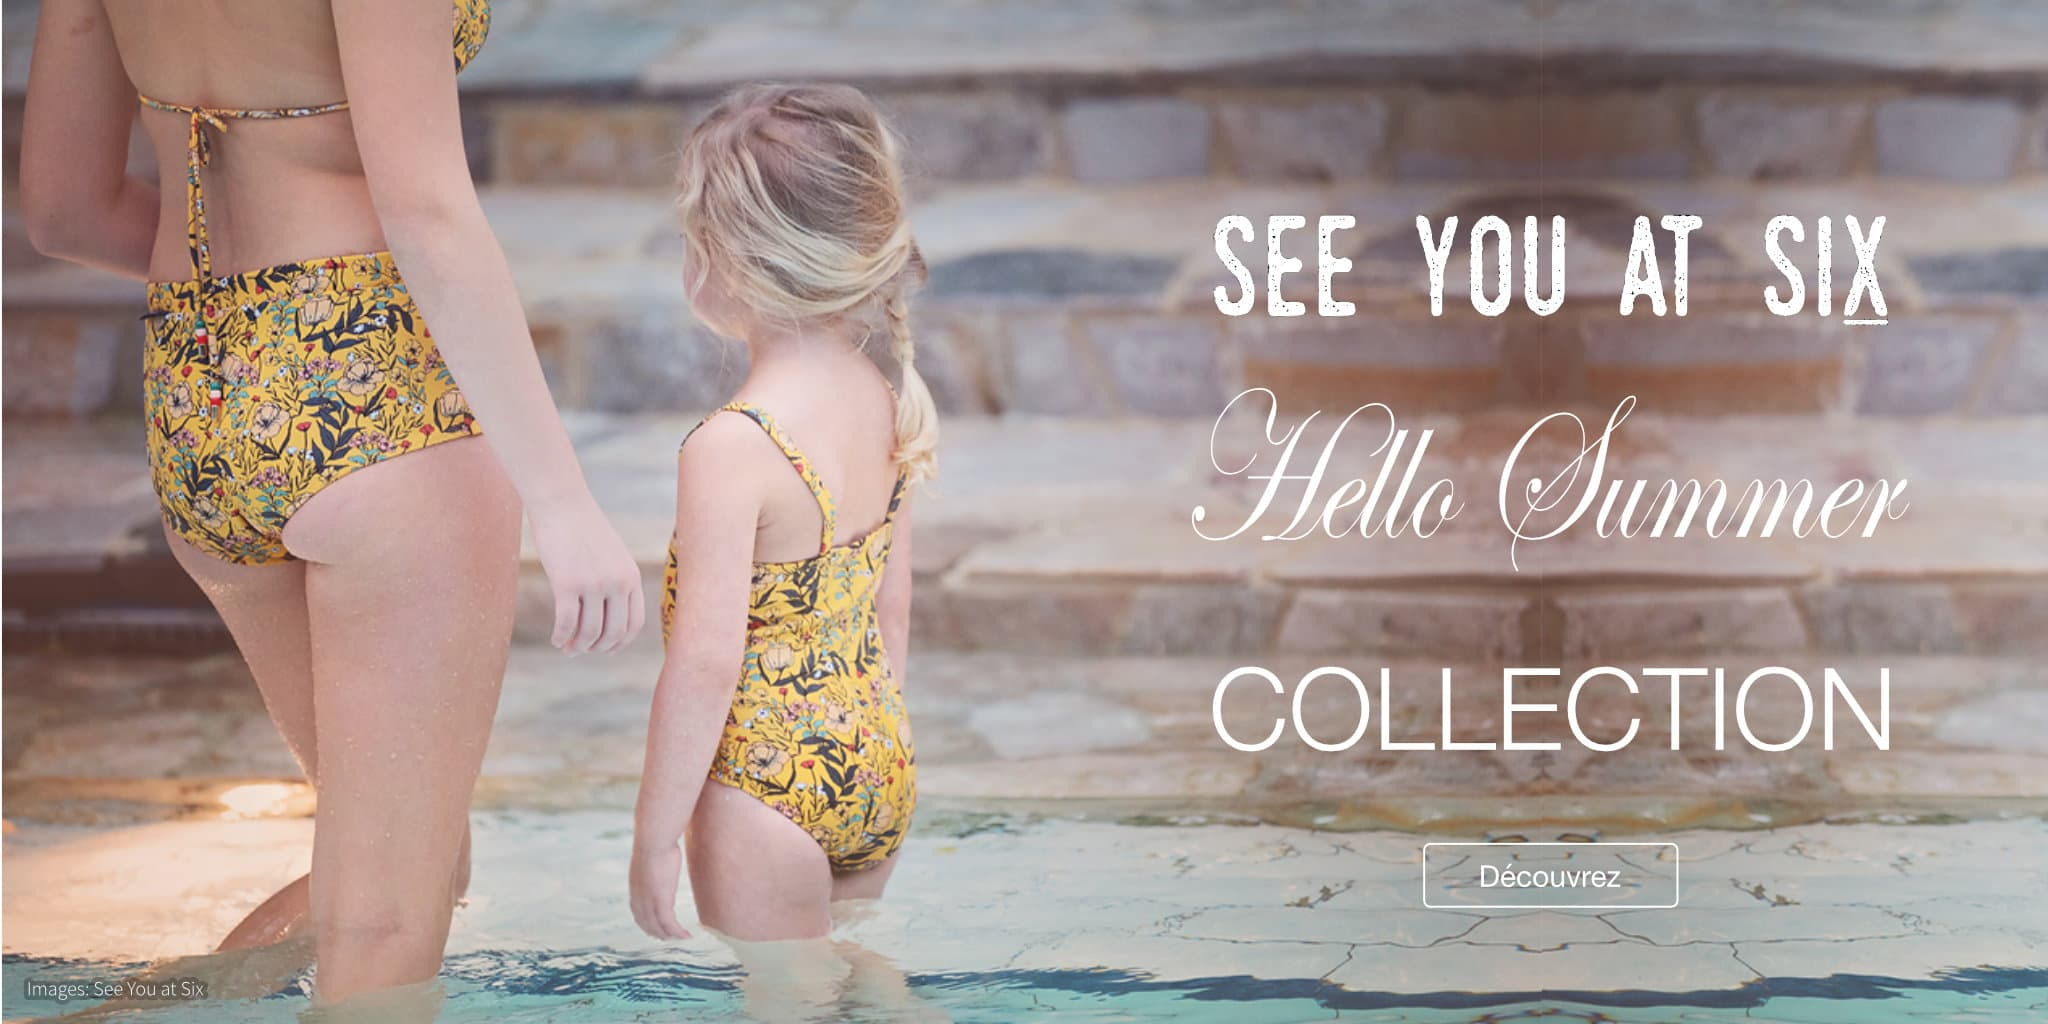 See You at Six - Summer 2020 Collection @ Coup de coudre